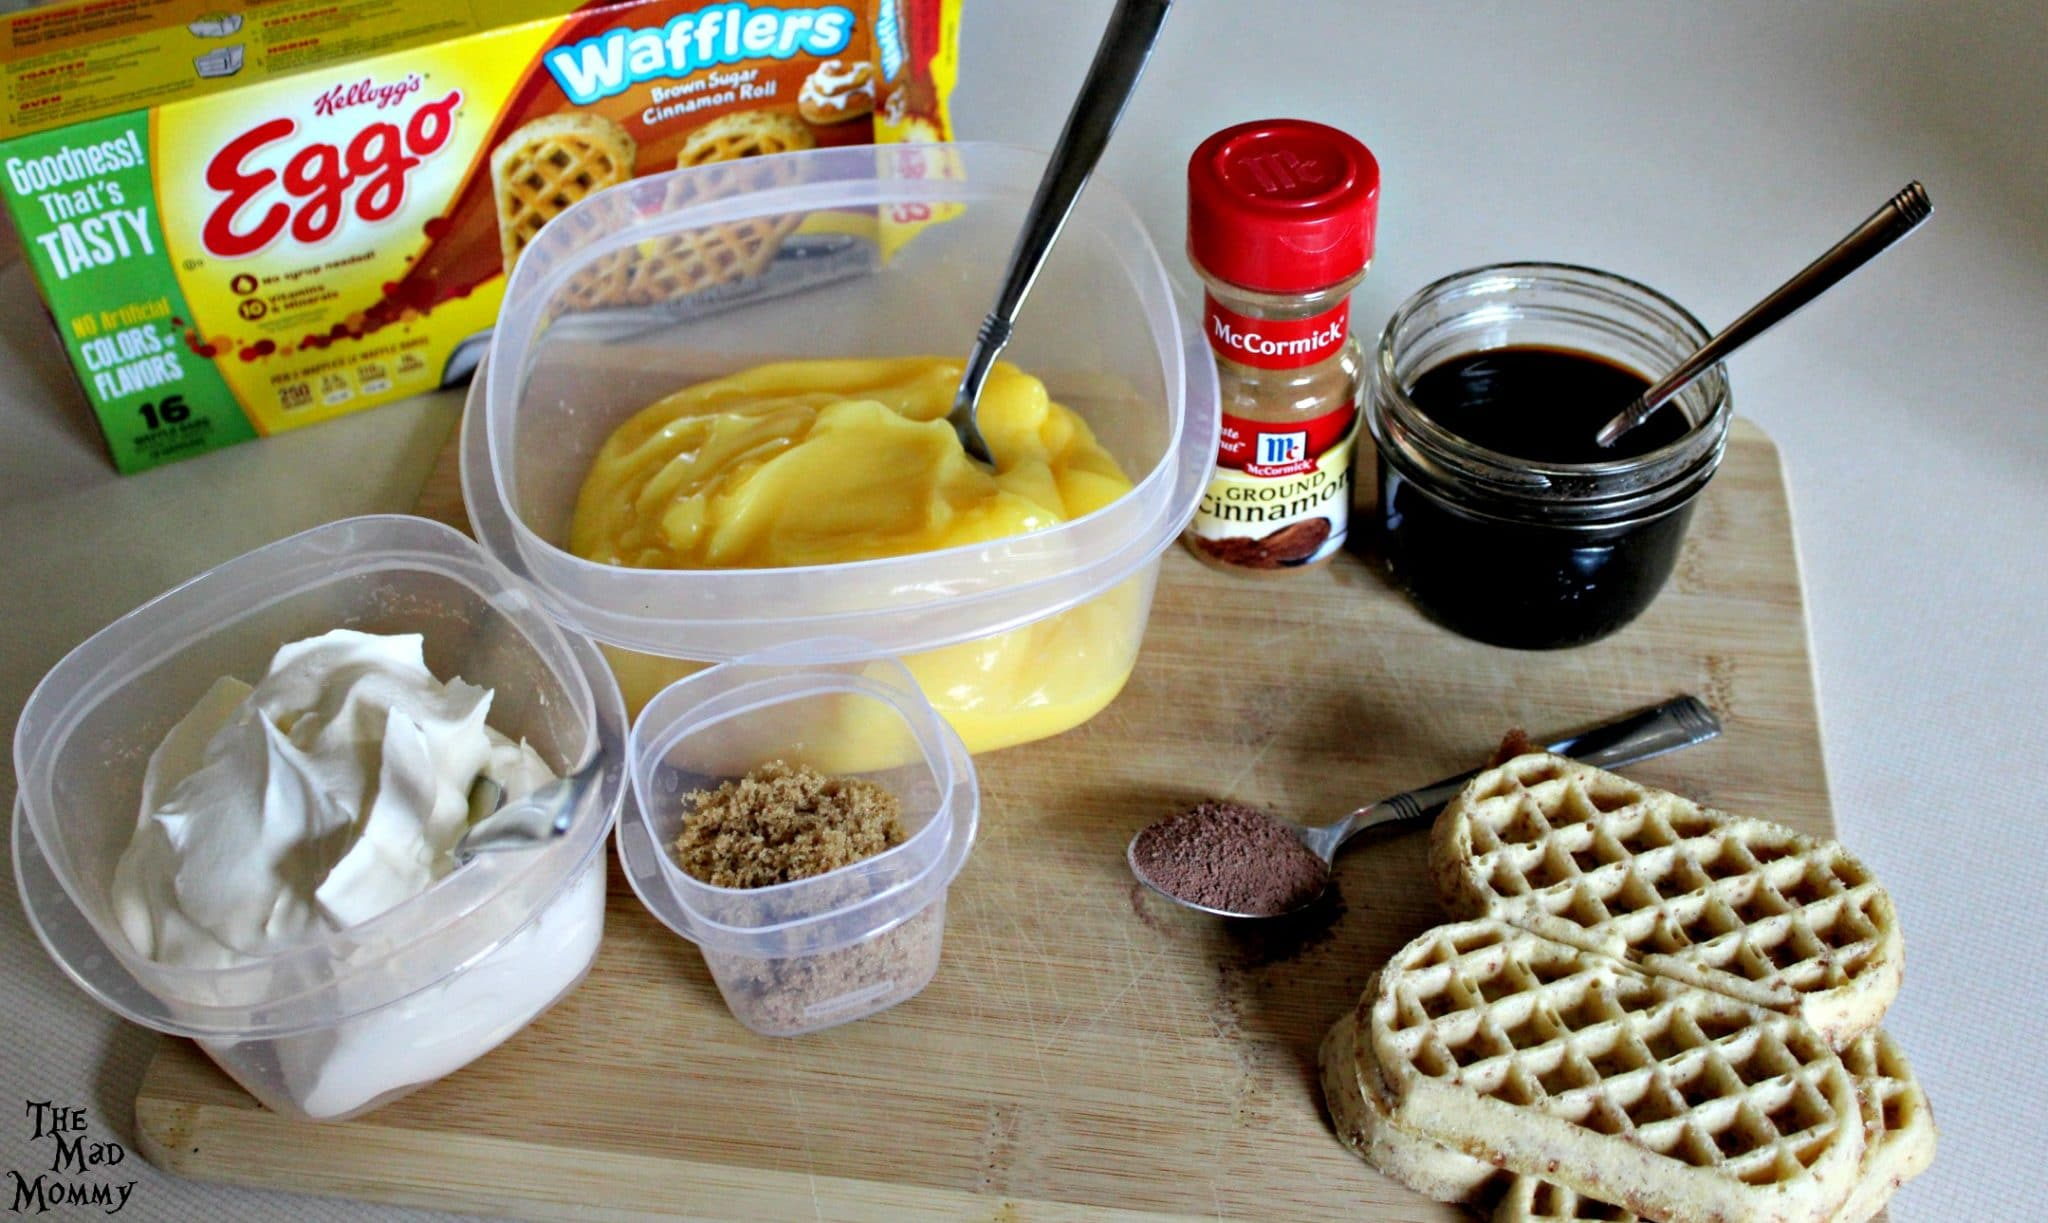 This waffle tiramisu recipe is so easy and delicious! You are sure to love it. Especially if you love Eggo Waffles and coffee, like me! Here is what I used to make it. #LeggoMyEggo #HearTheNews #ad